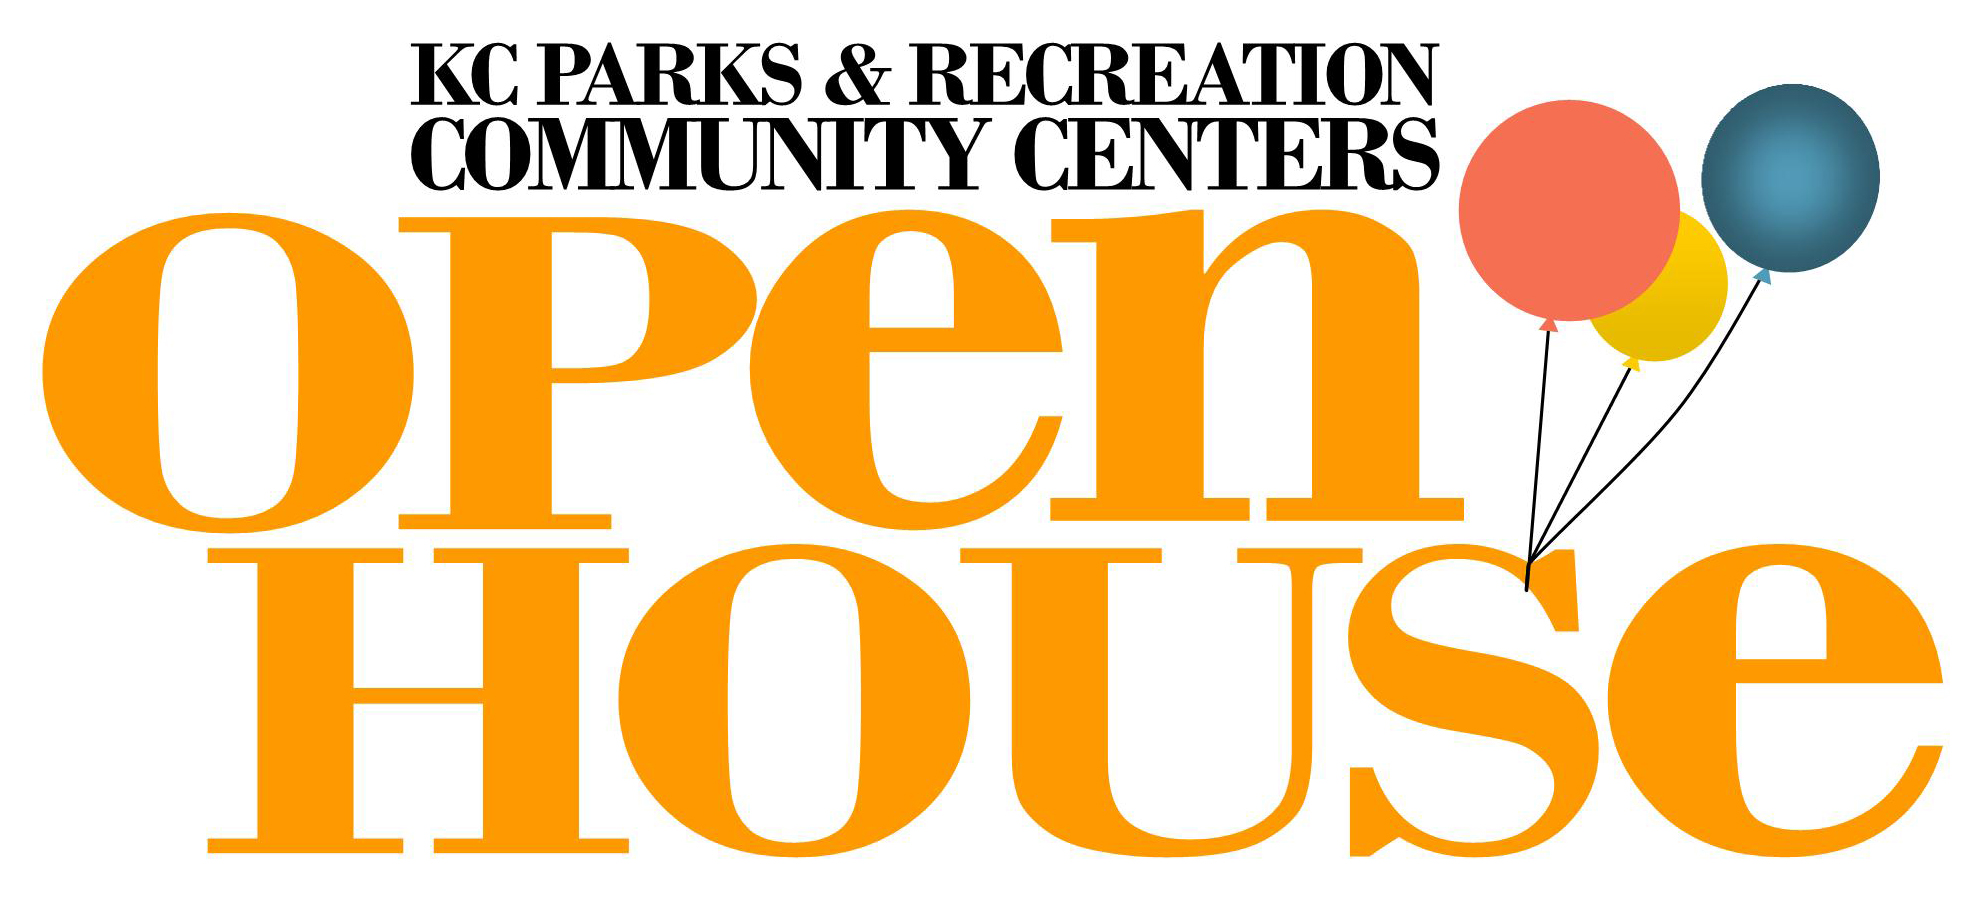 MEDIA ADVISORY: Open Houses This Weekend